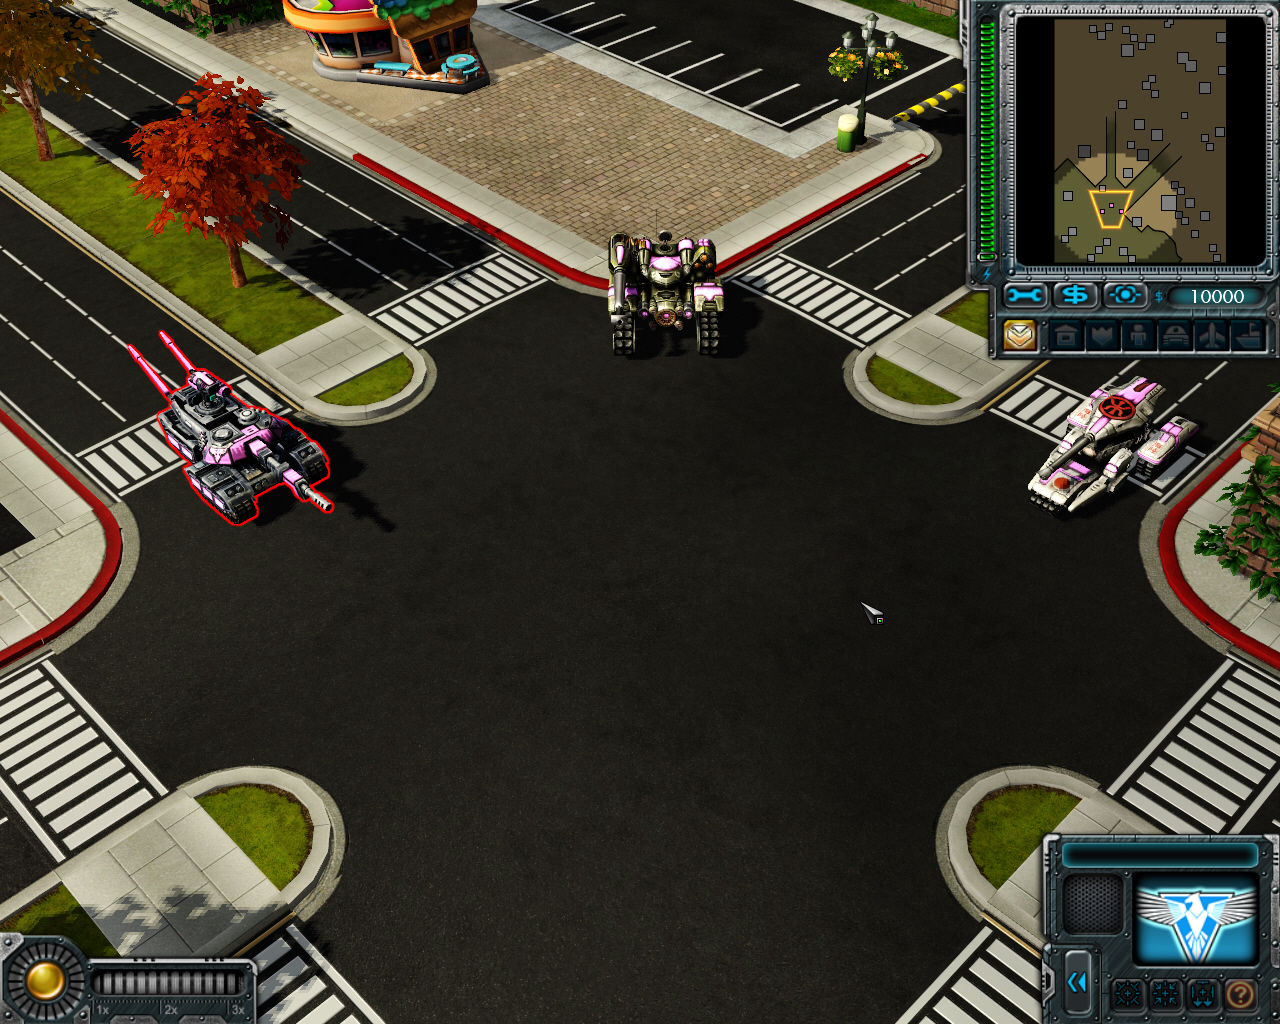 Command & Conquer: Red Alert 3 Windows Training mission begins.